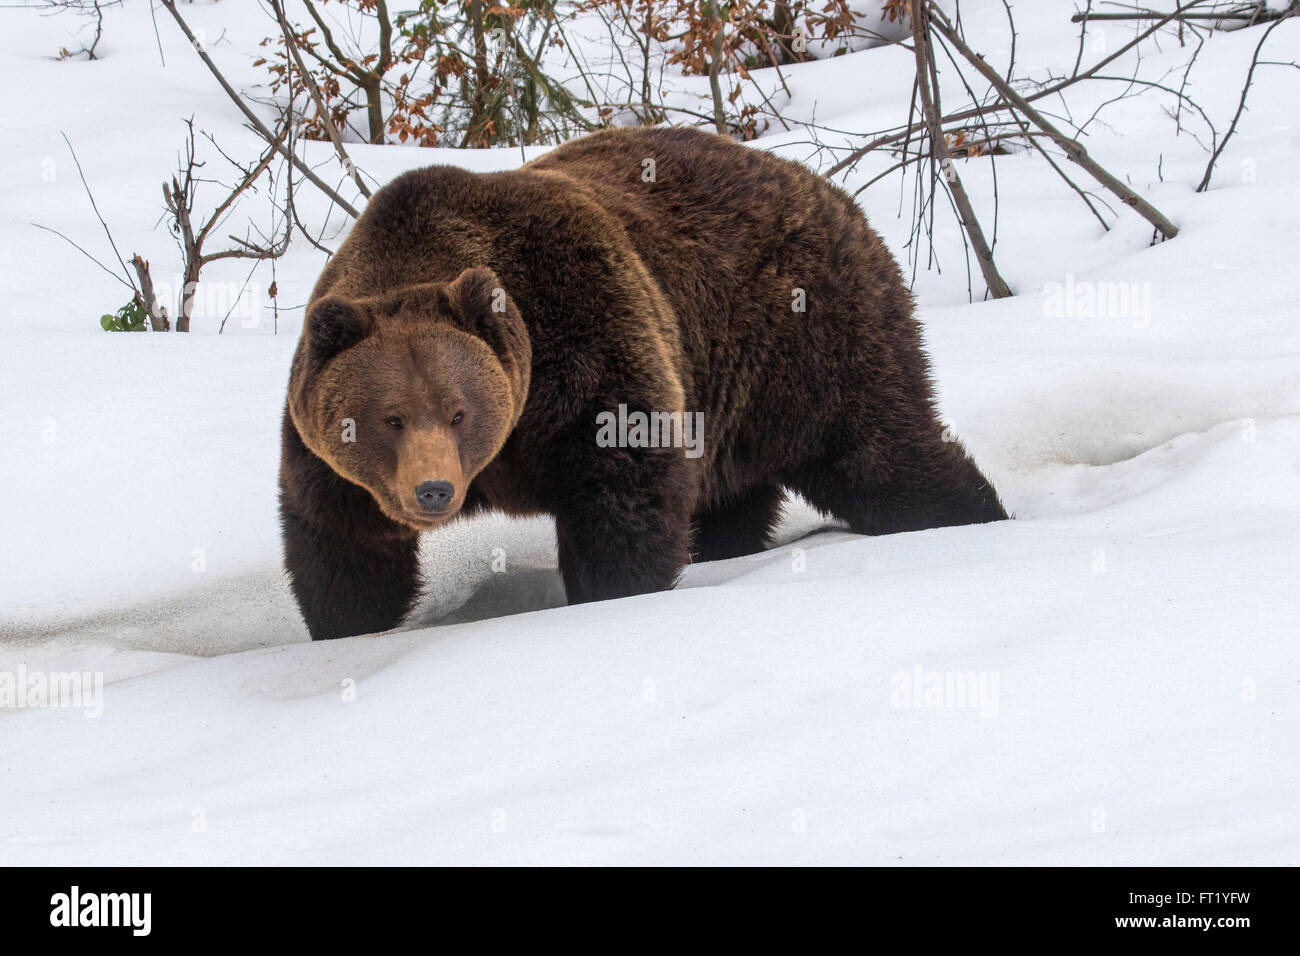 Brown bear (Ursus arctos) walking in forest in the snow in winter / autumn / spring - Stock Image